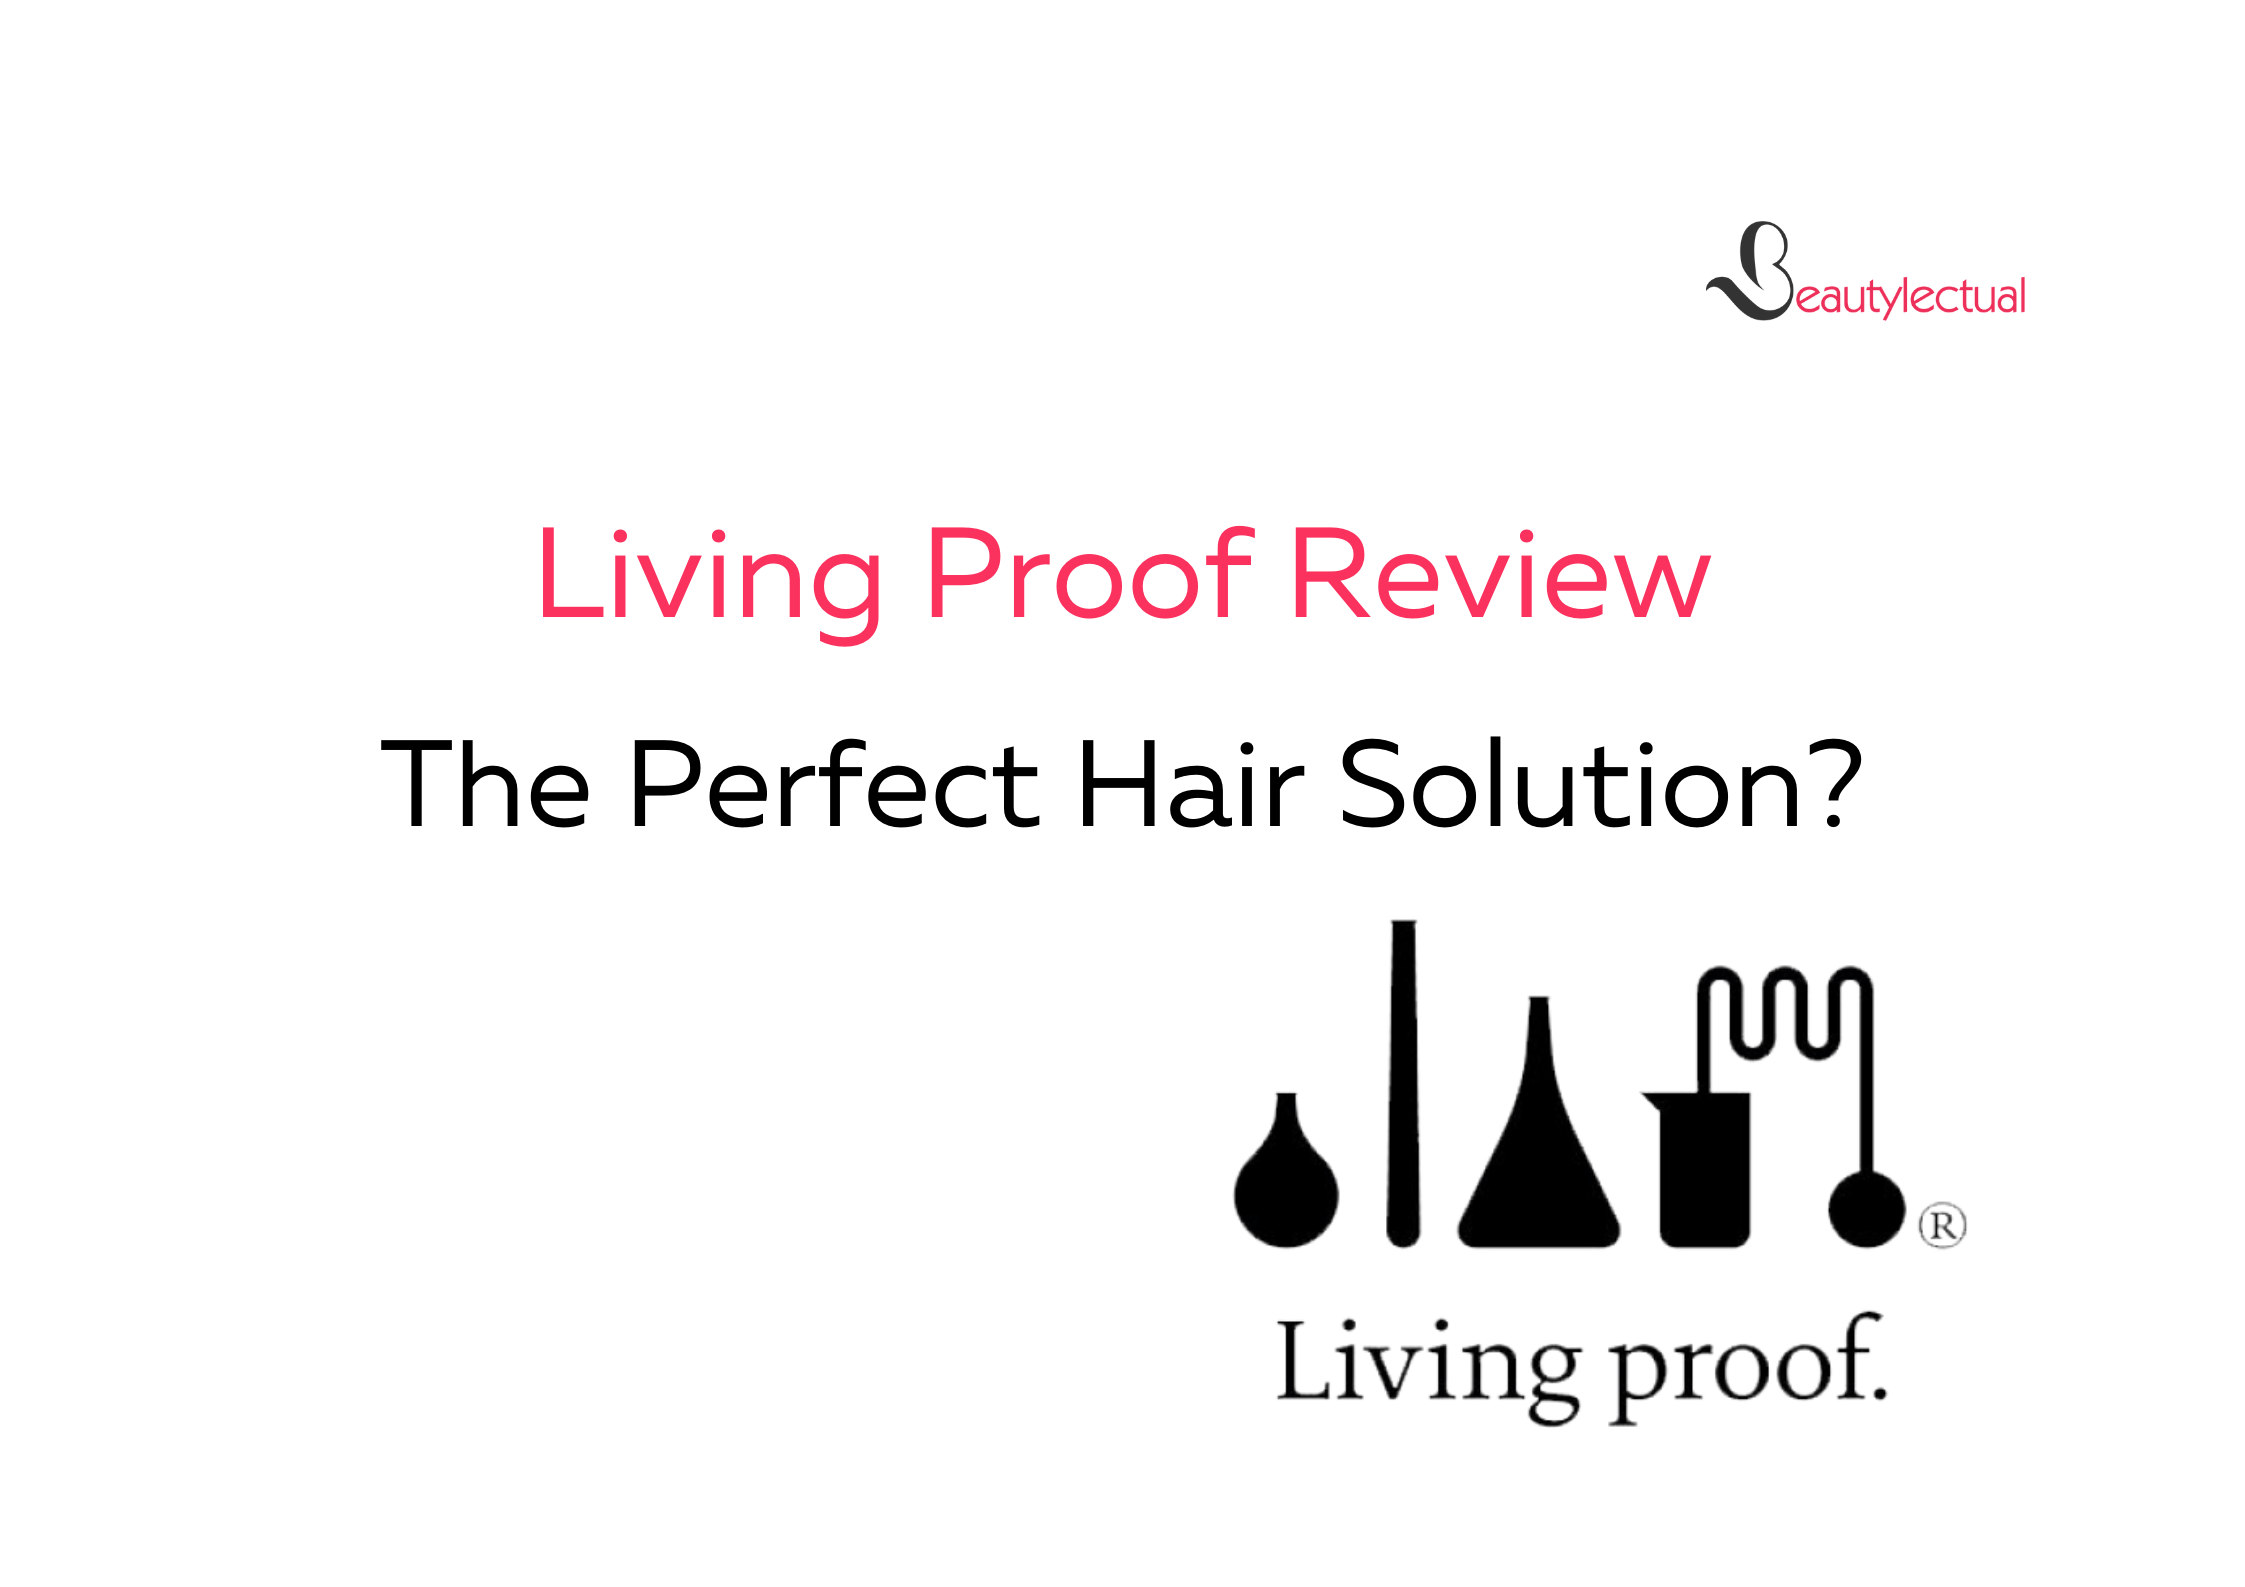 Living Proof Review